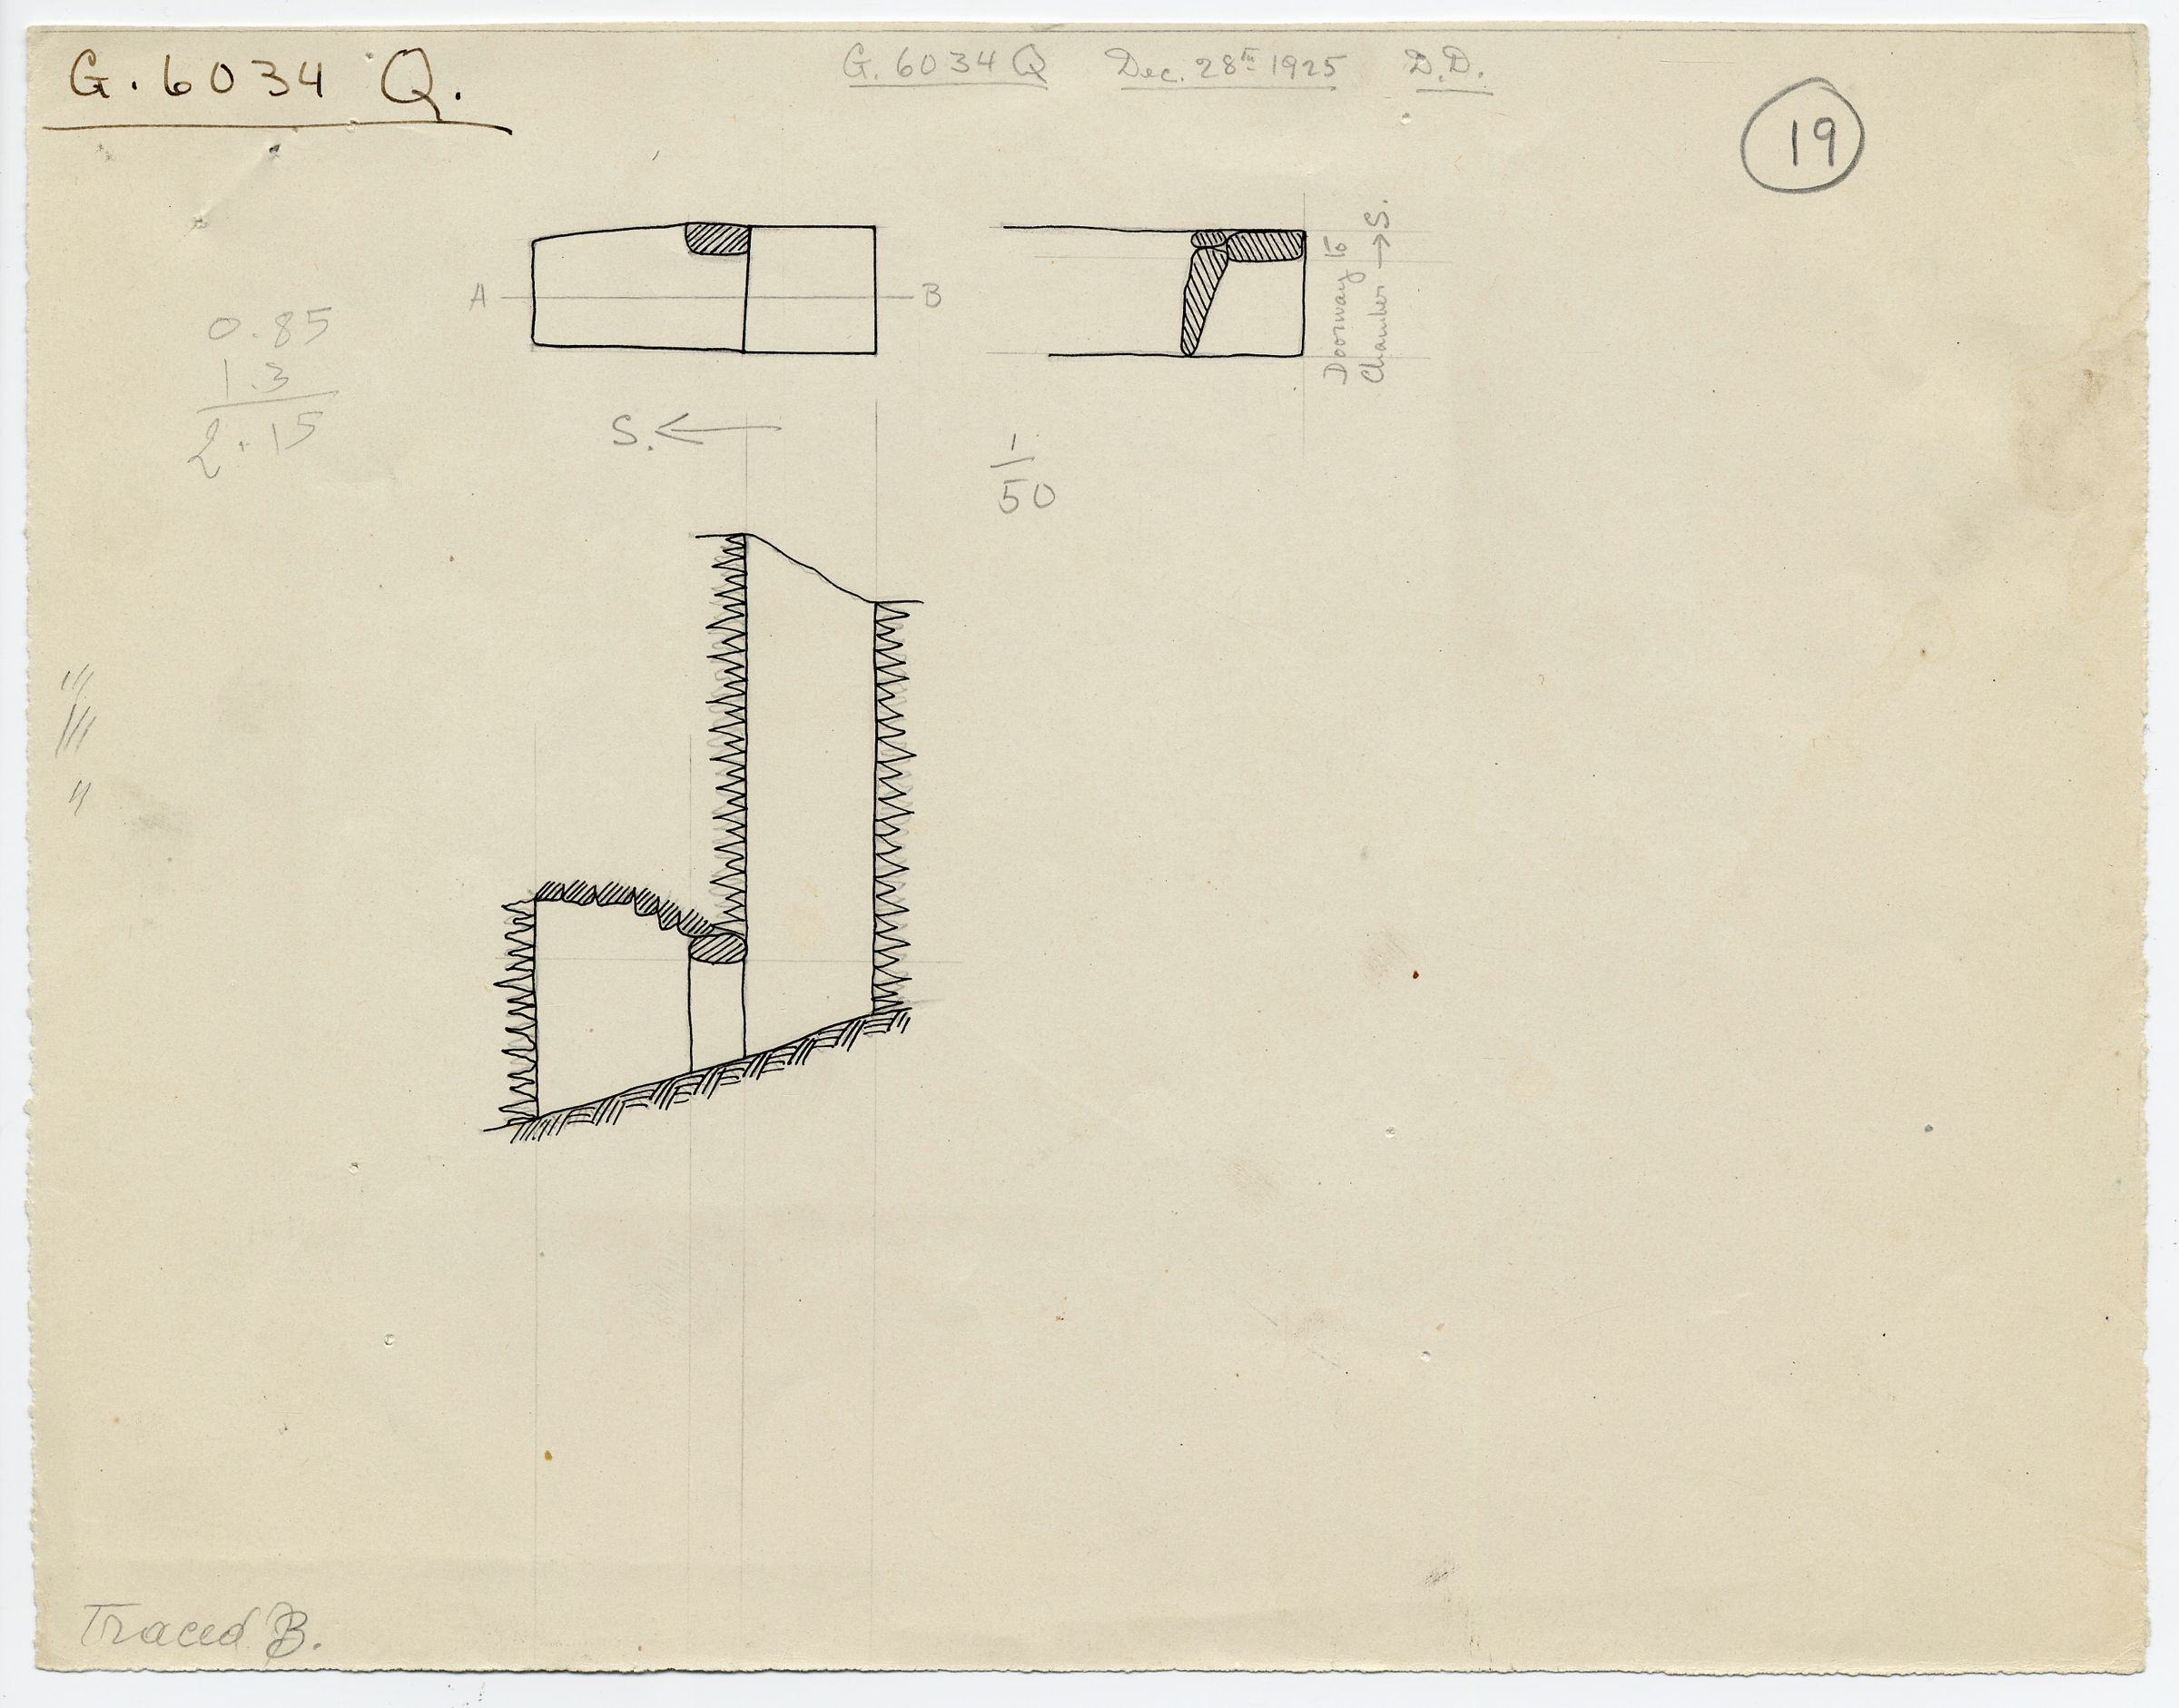 Maps and plans: G 6034, Shaft Q